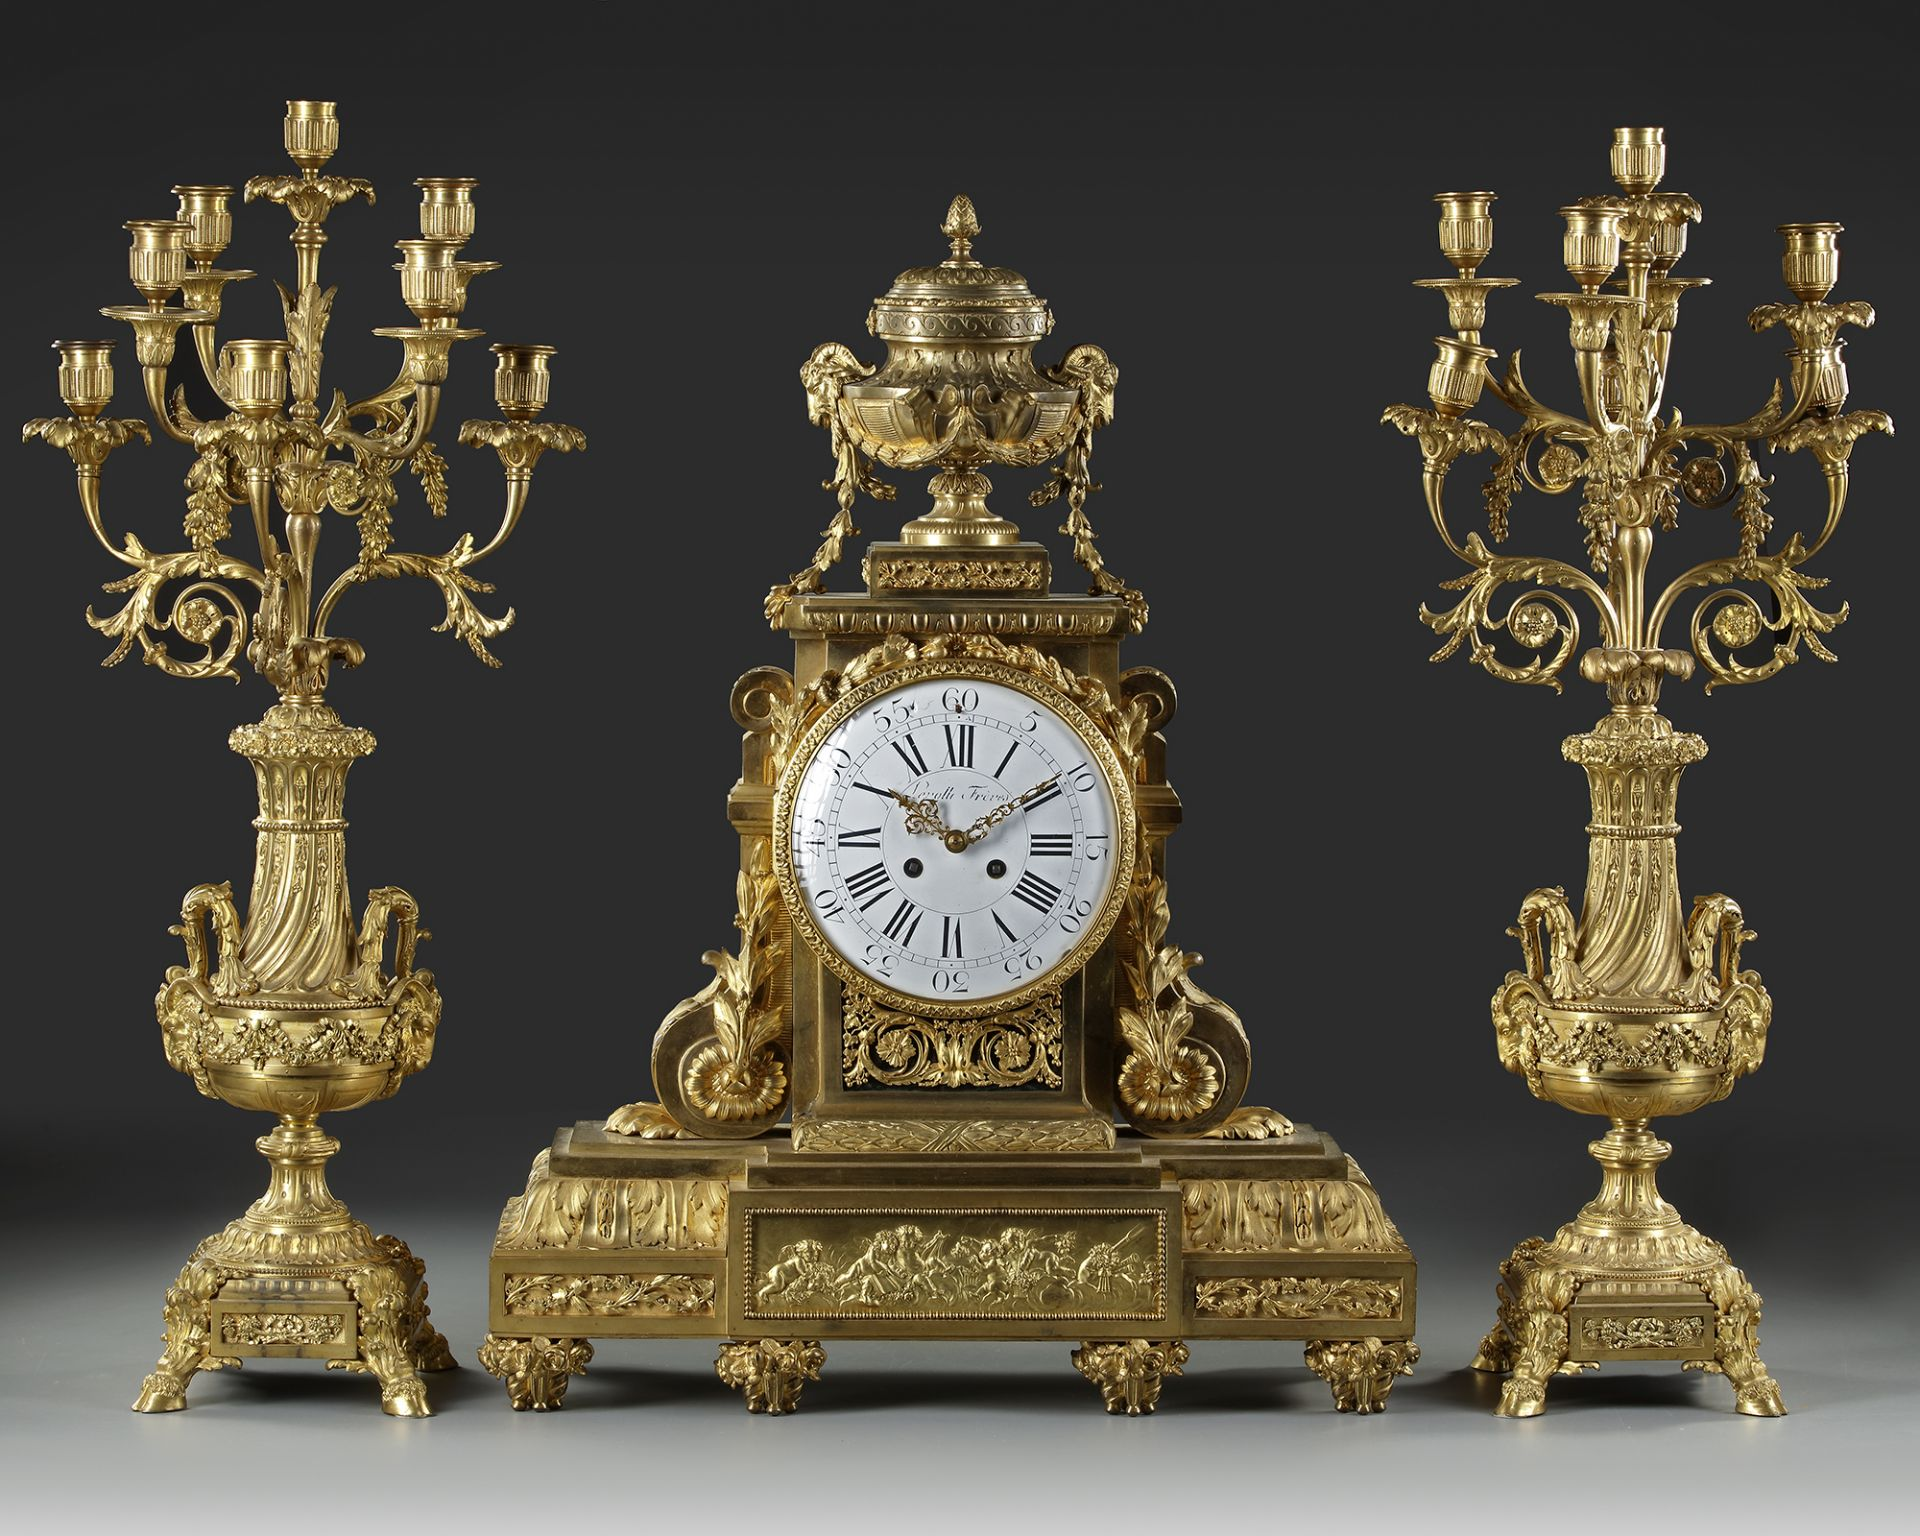 A FRENCH ORMOLU CLOCK SET, LATE 19TH CENTURY